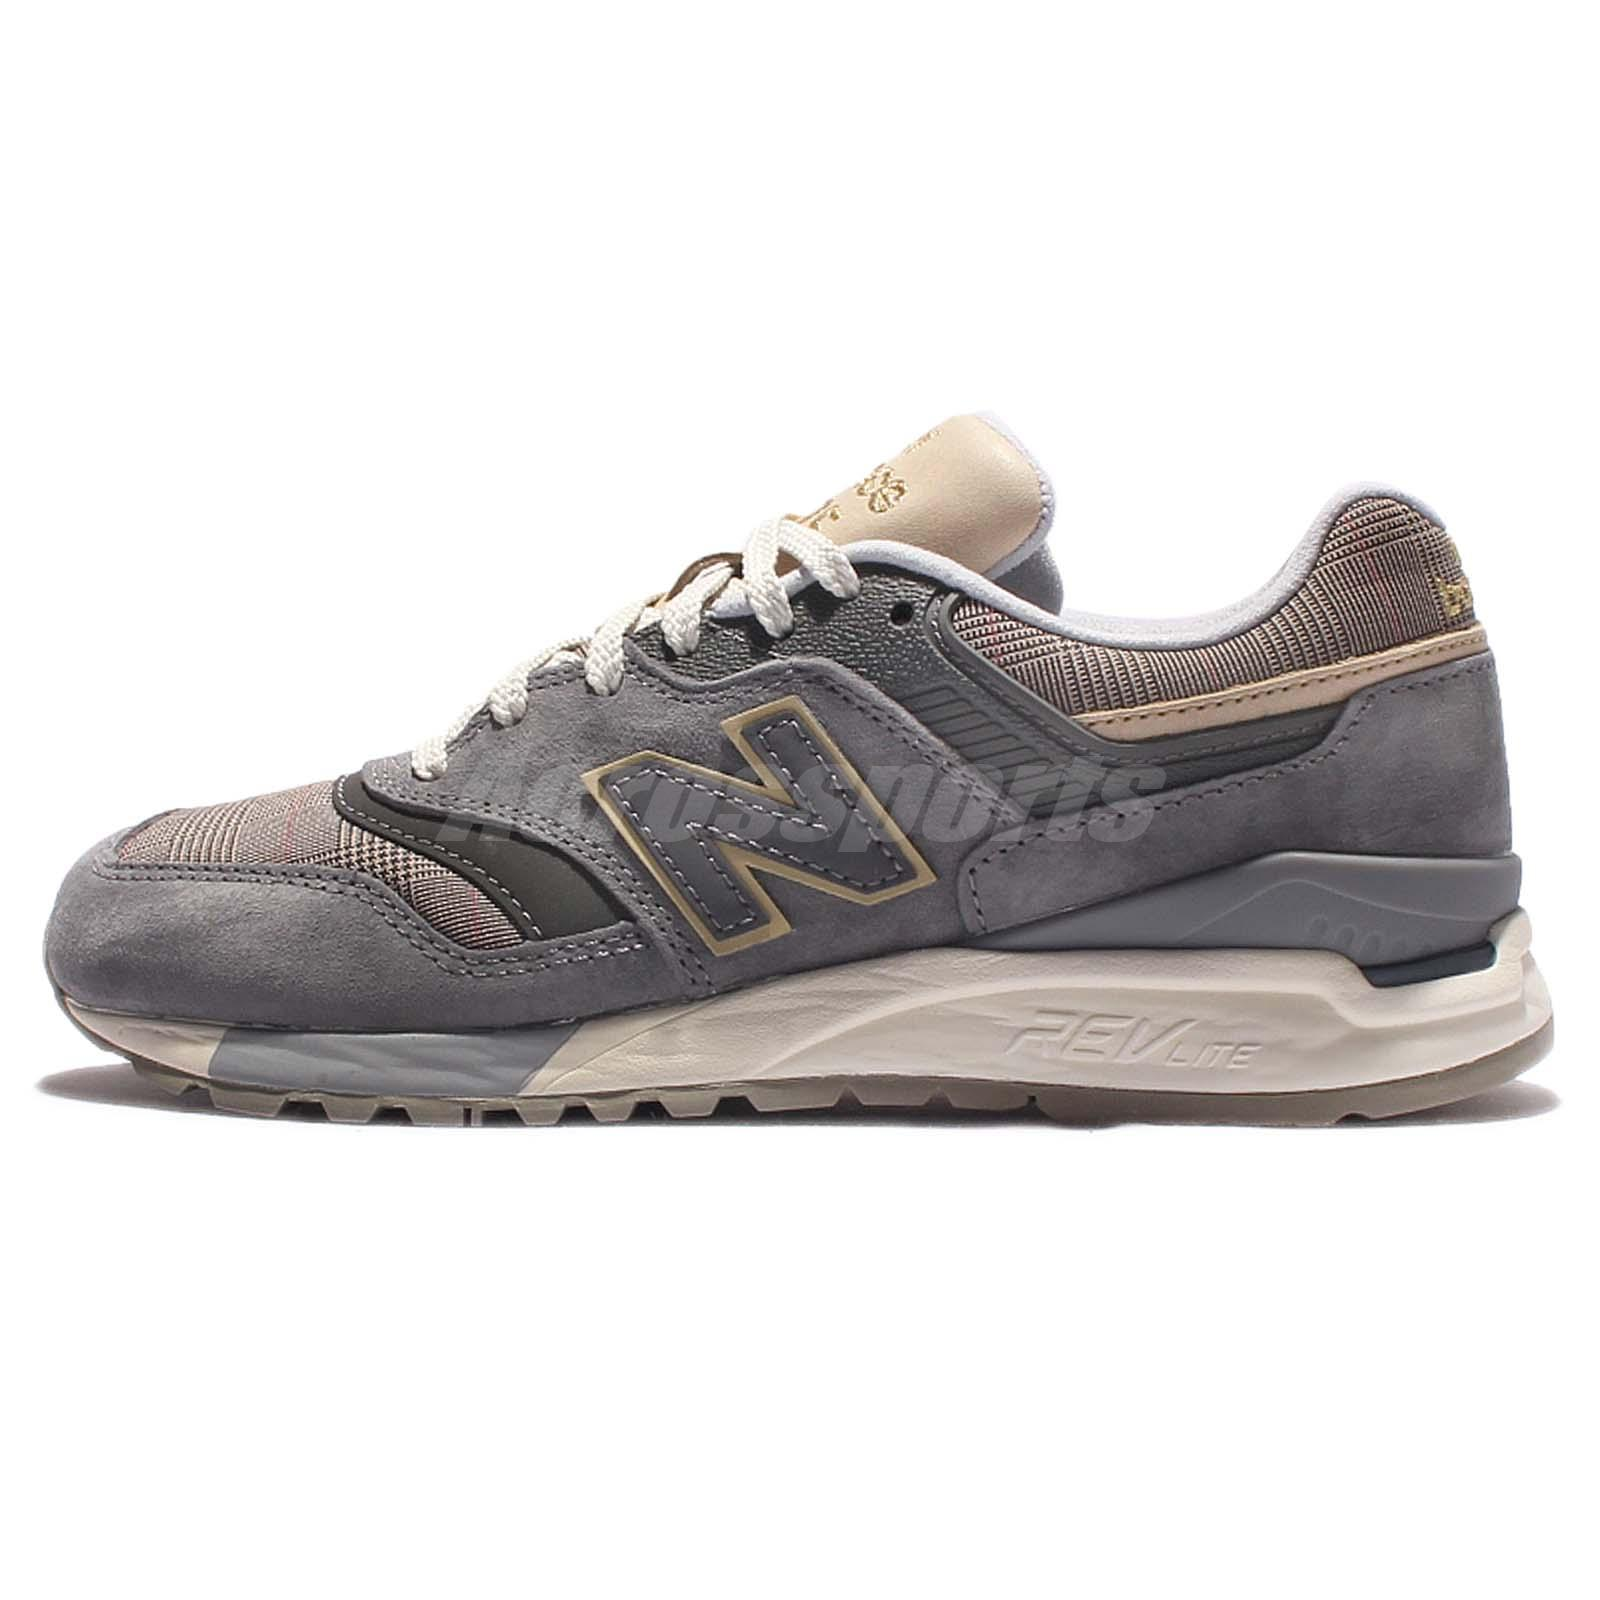 new balance wl997hwa b grey yellow suede womens running shoes sneakers wl997hwab ebay